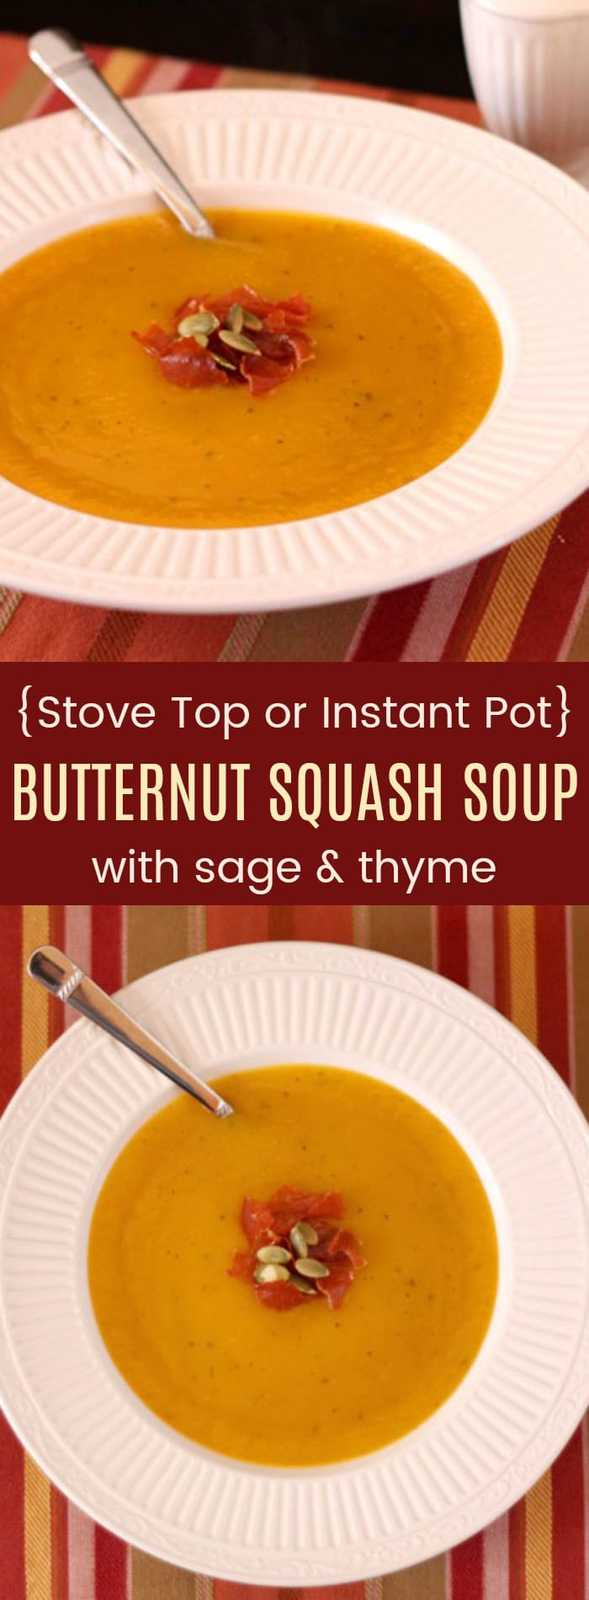 Stove Top or Instant Pot Butternut Squash Soup Recipe with Sage and Thyme - an easy and healthy recipe you can make on the stove or in your pressure cooker. Gluten-free, with options to make it vegan, paleo, and Whole 30 friendly! #butternutsquashsoup #glutenfree #instantpot #whole30 #paleo #vegan